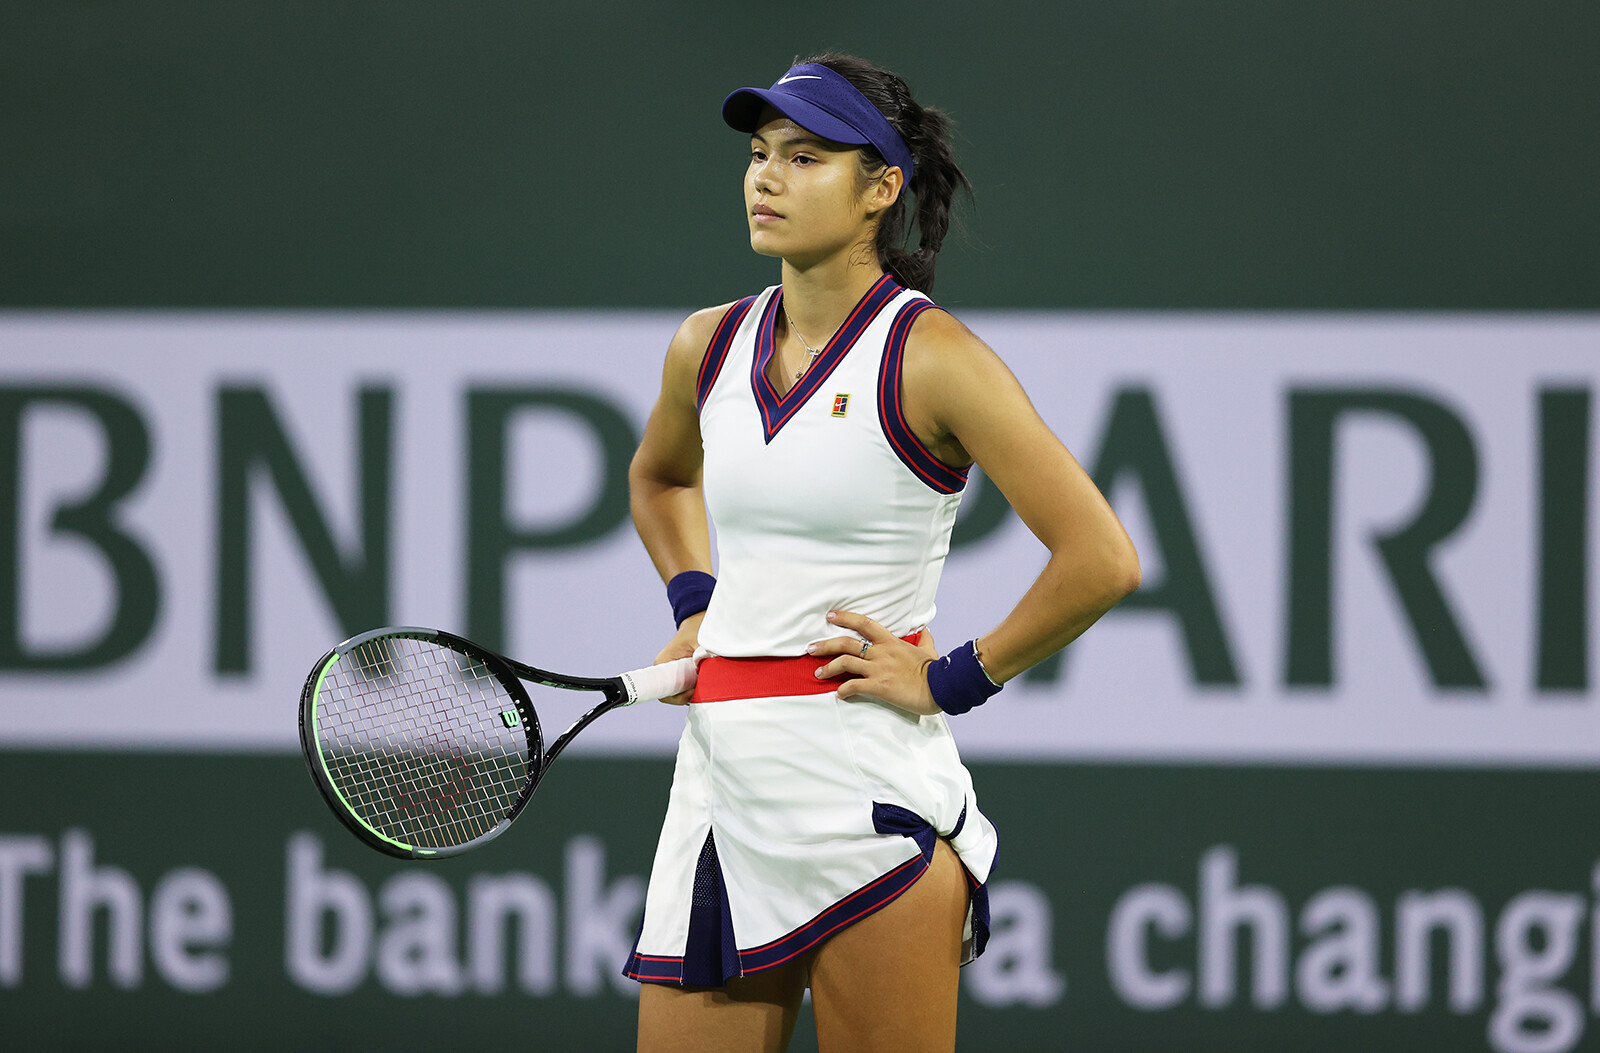 Emma Raducanu says she needs to cut herself 'some slack' after defeat by Aliaksandra Sasnovich at Indian Wells